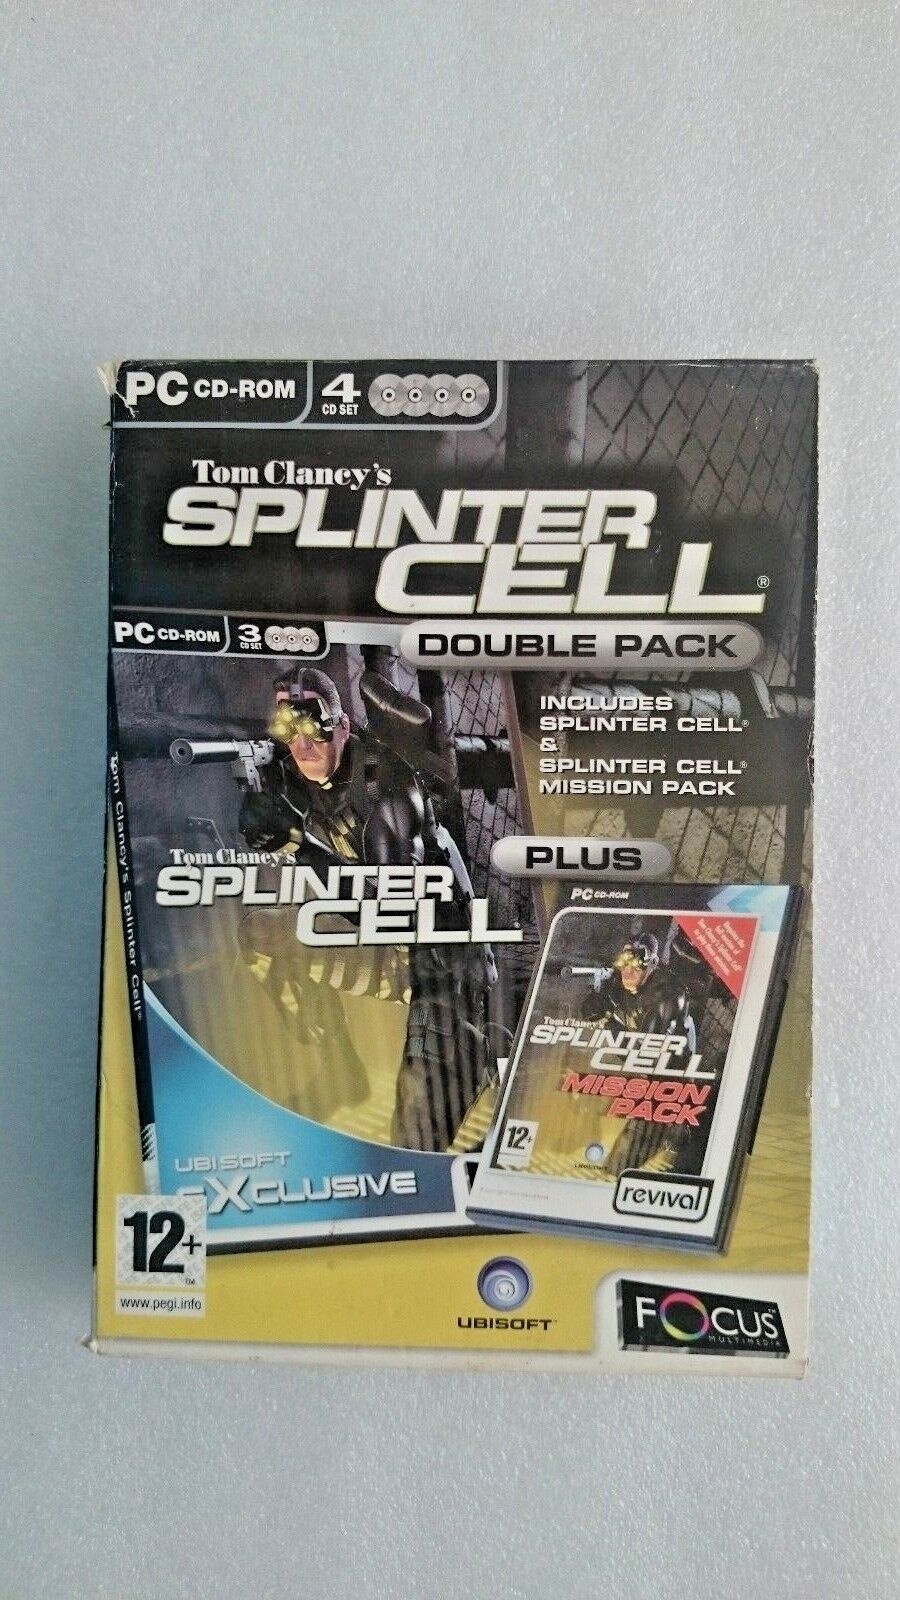 Splinter Cell Plus Splinter Cell Mission (PC Windows 2002)